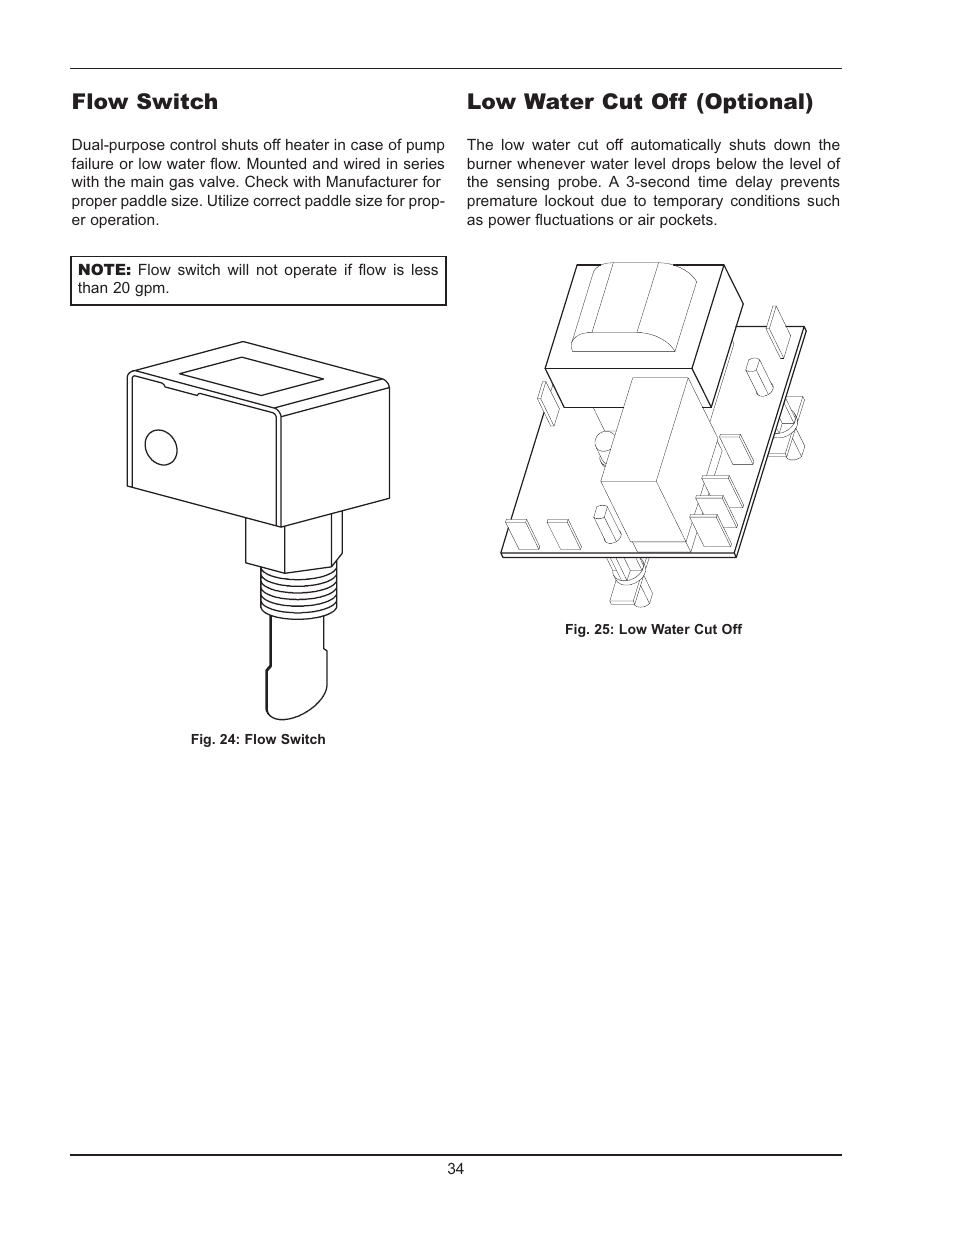 Low water cut off (optional), Flow switch | Raypak HI DELTA 122-322 User  Manual | Page 34 / 44